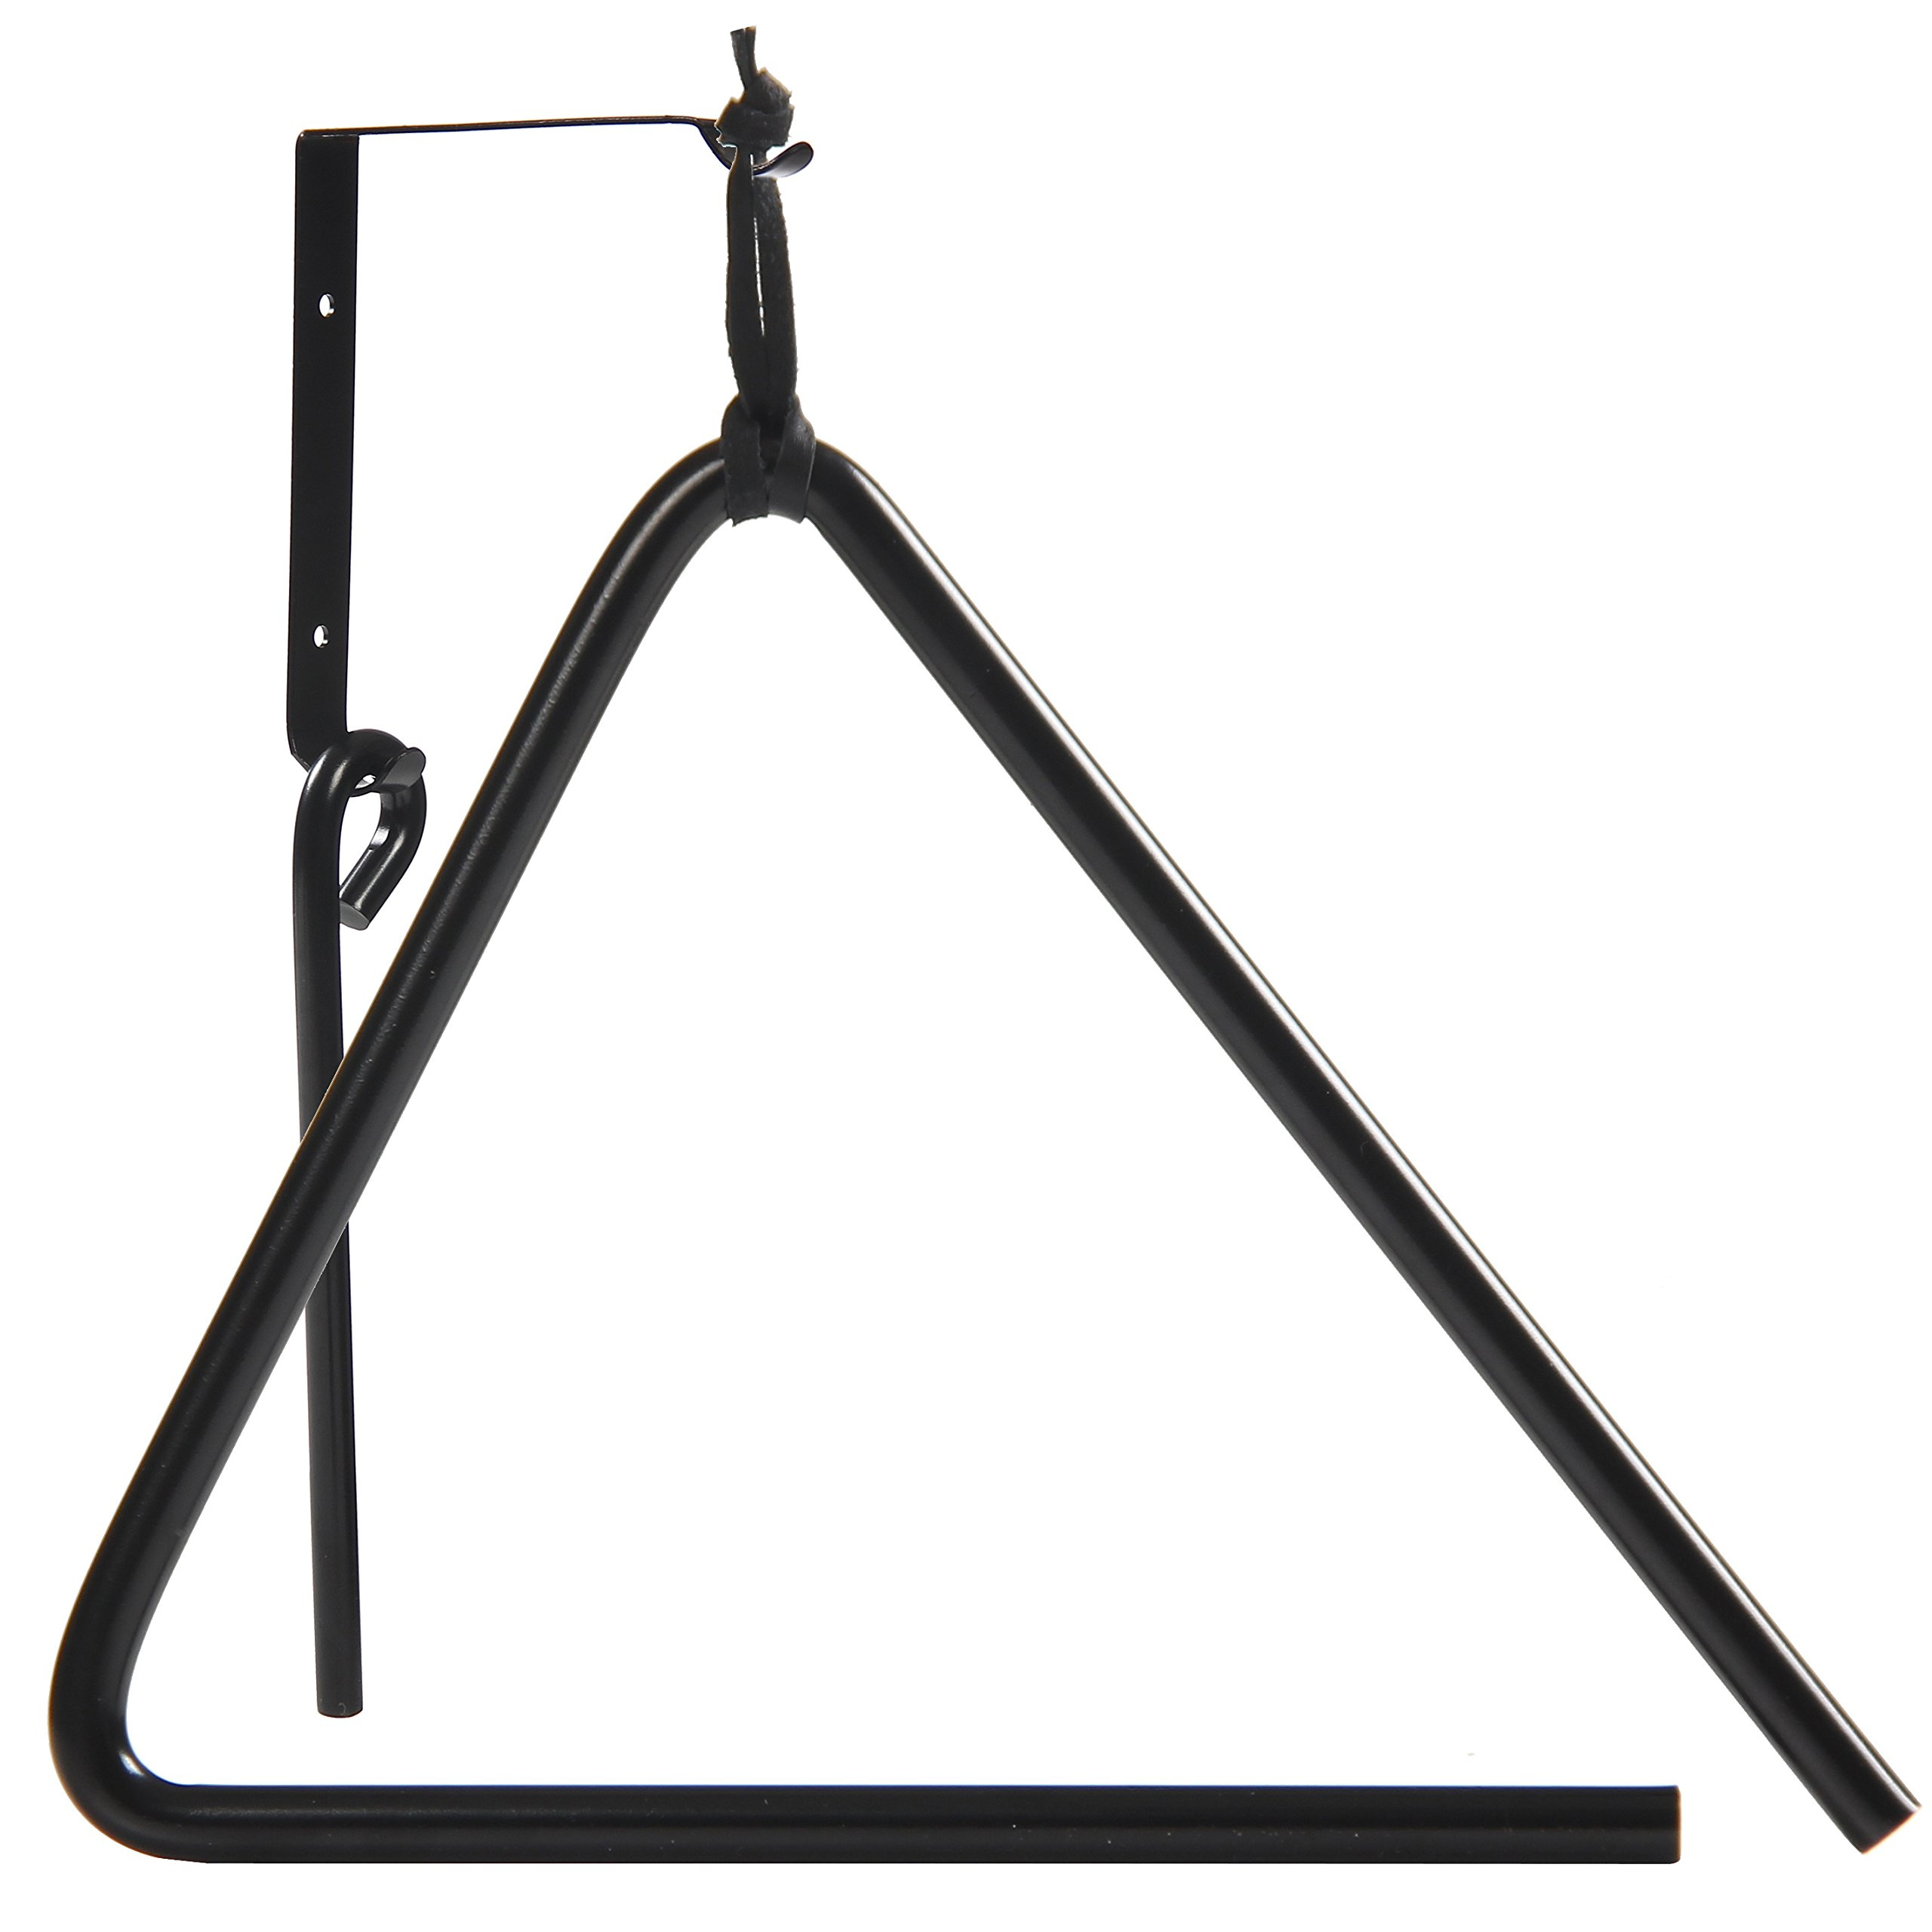 Triangle Dinner Bell made of Chuckwagon Cast Iron - Includes Medal Hanger and Call Striker by Upstreet